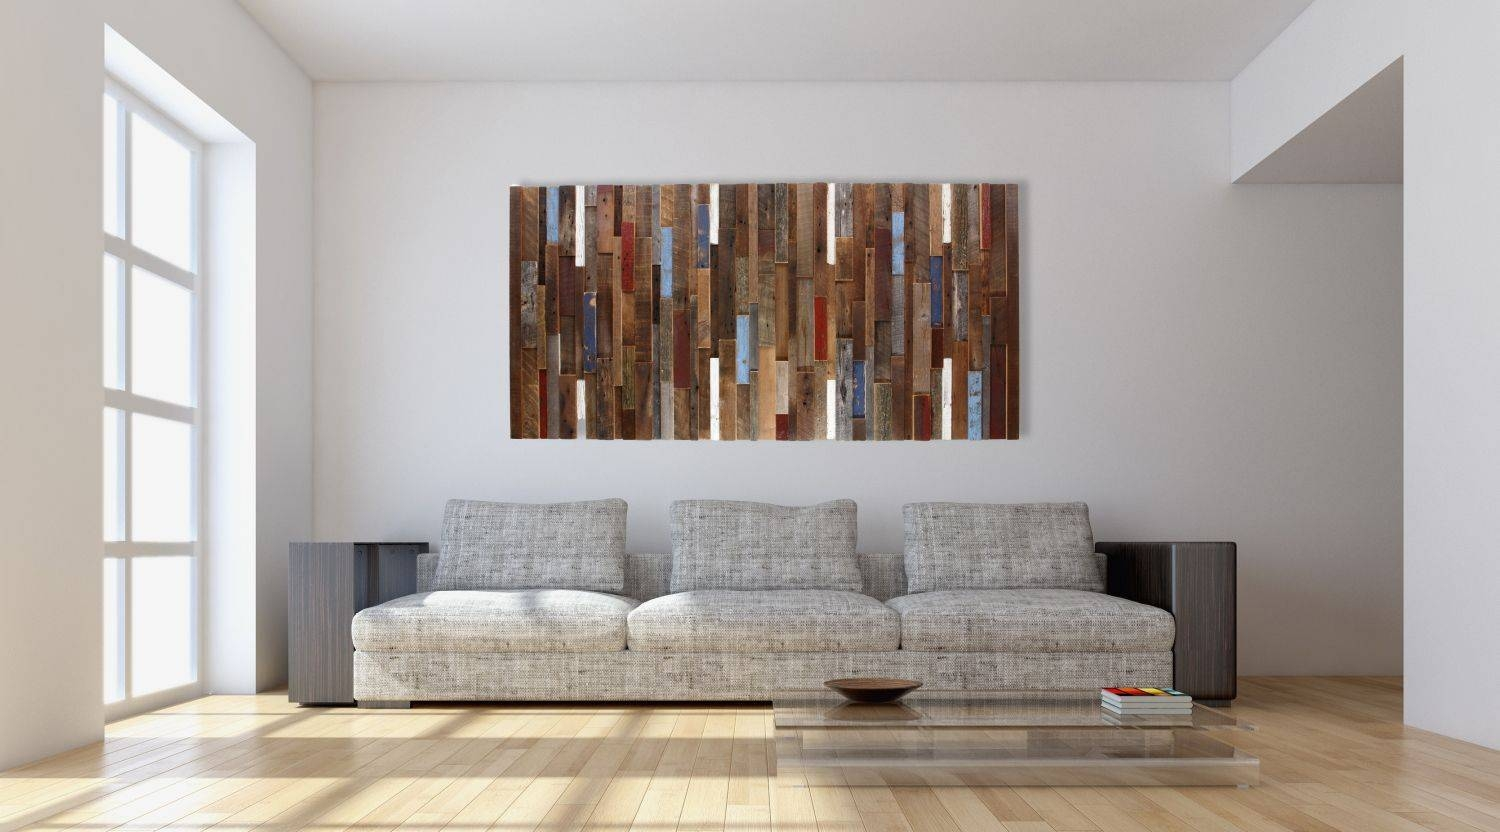 Hand Made Wood Wall Art Made Of Old Reclaimed Barnwood, Different With Regard To Recent Sofa Size Wall Art (View 6 of 20)